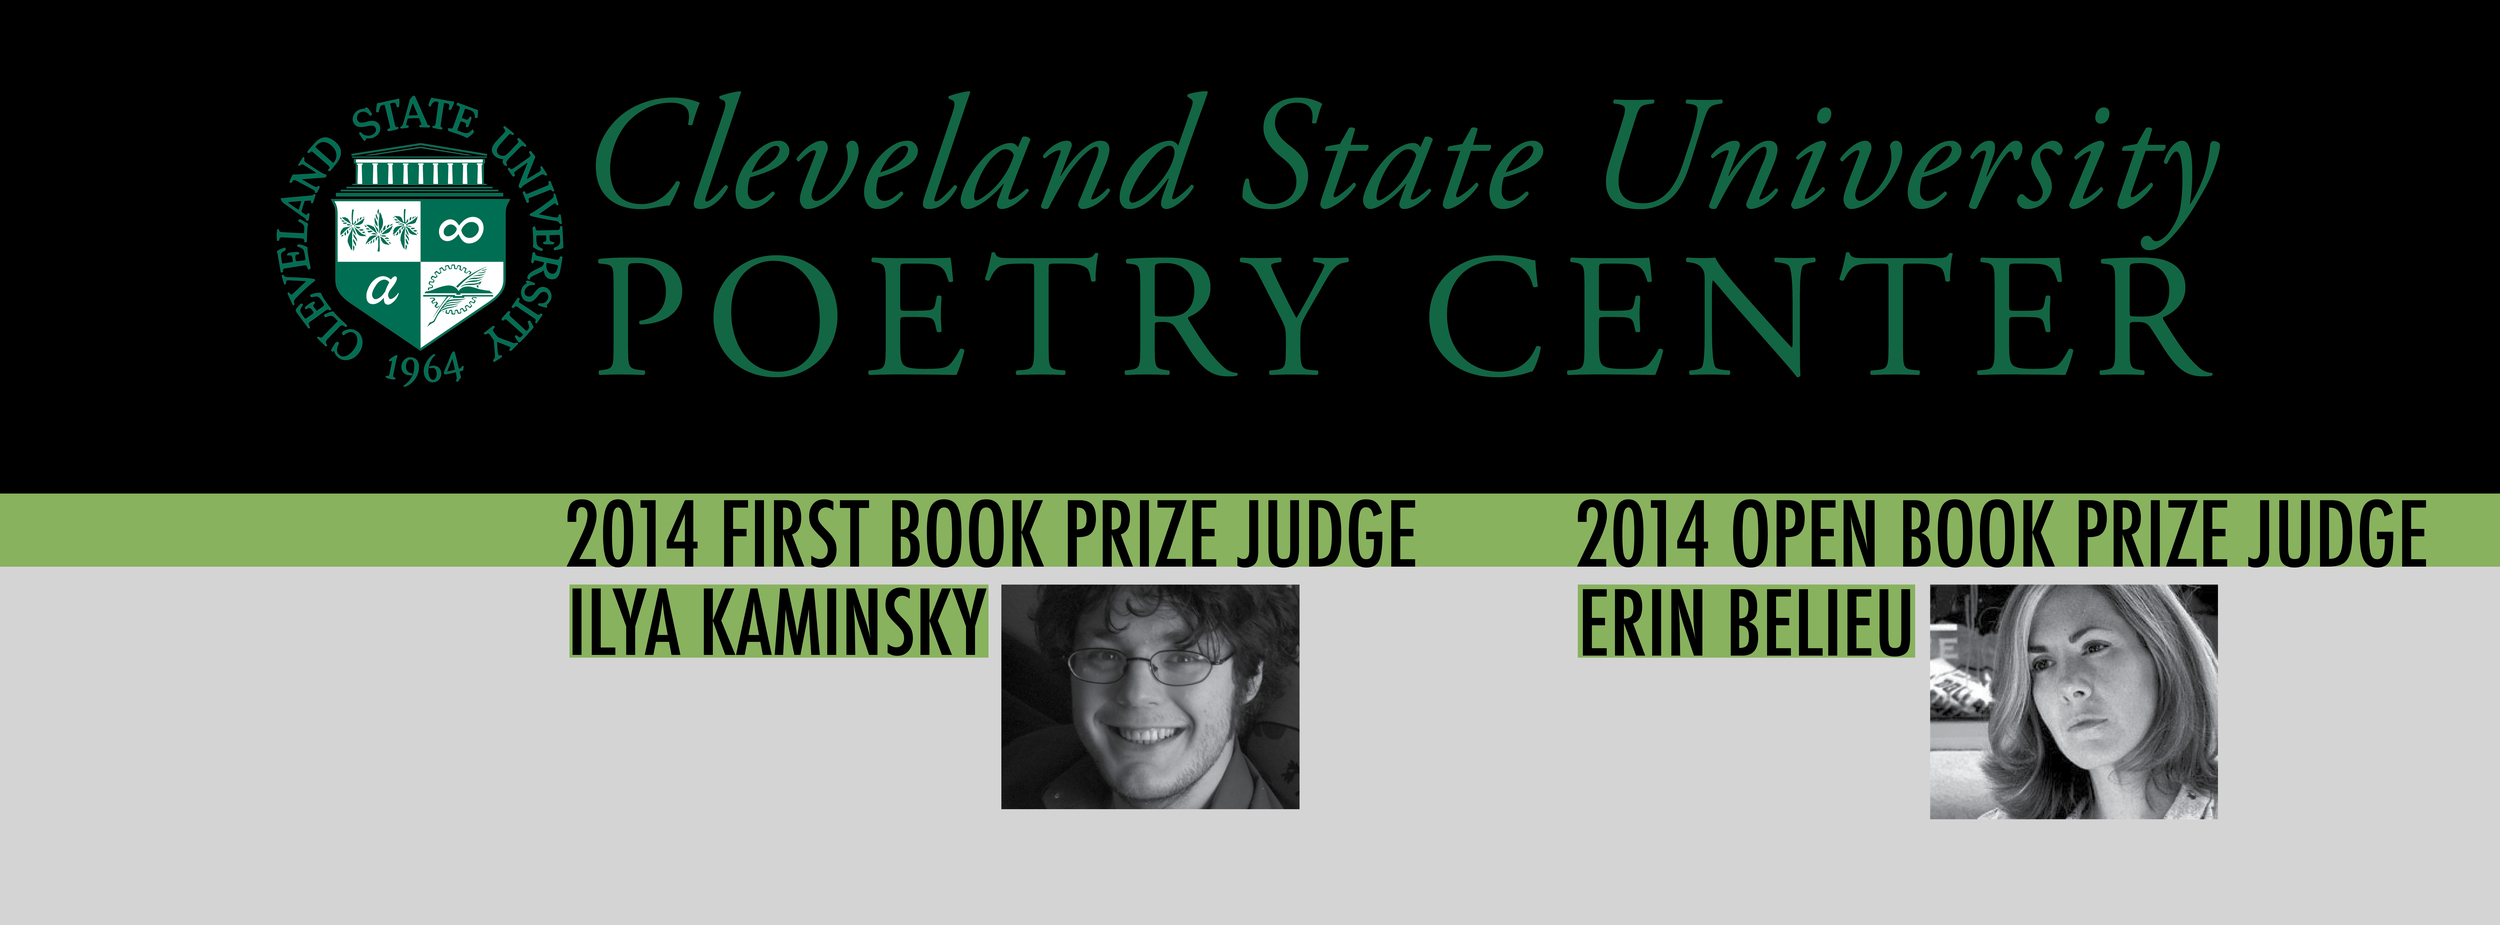 Cleveland State University Poetry Center Facebook cover photo.